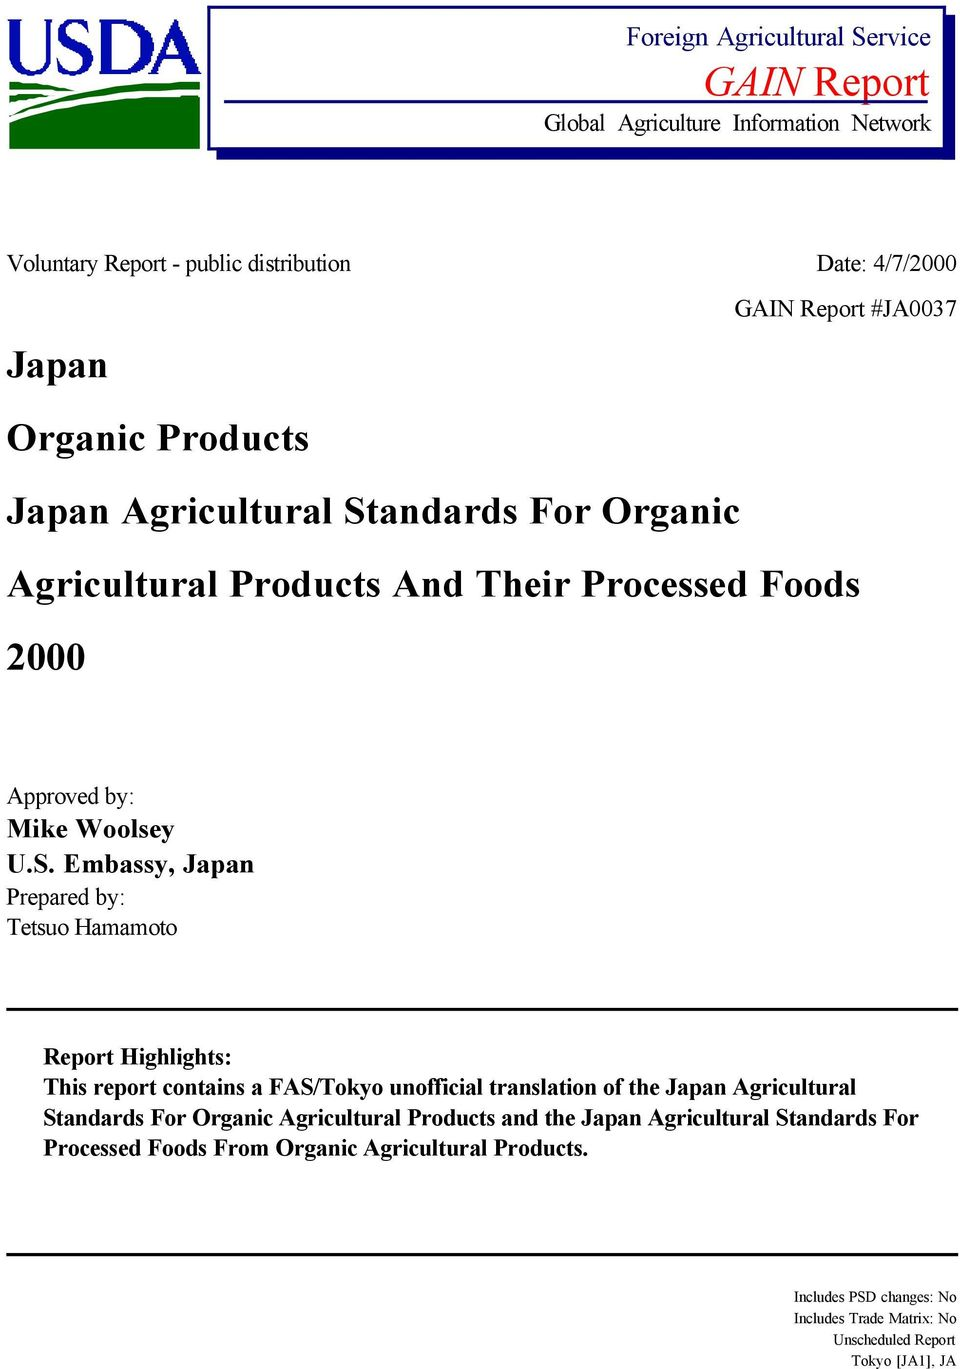 Embassy, Japan Prepared by: Tetsuo Hamamoto Report Highlights: This report contains a FAS/Tokyo unofficial translation of the Japan Agricultural For Organic